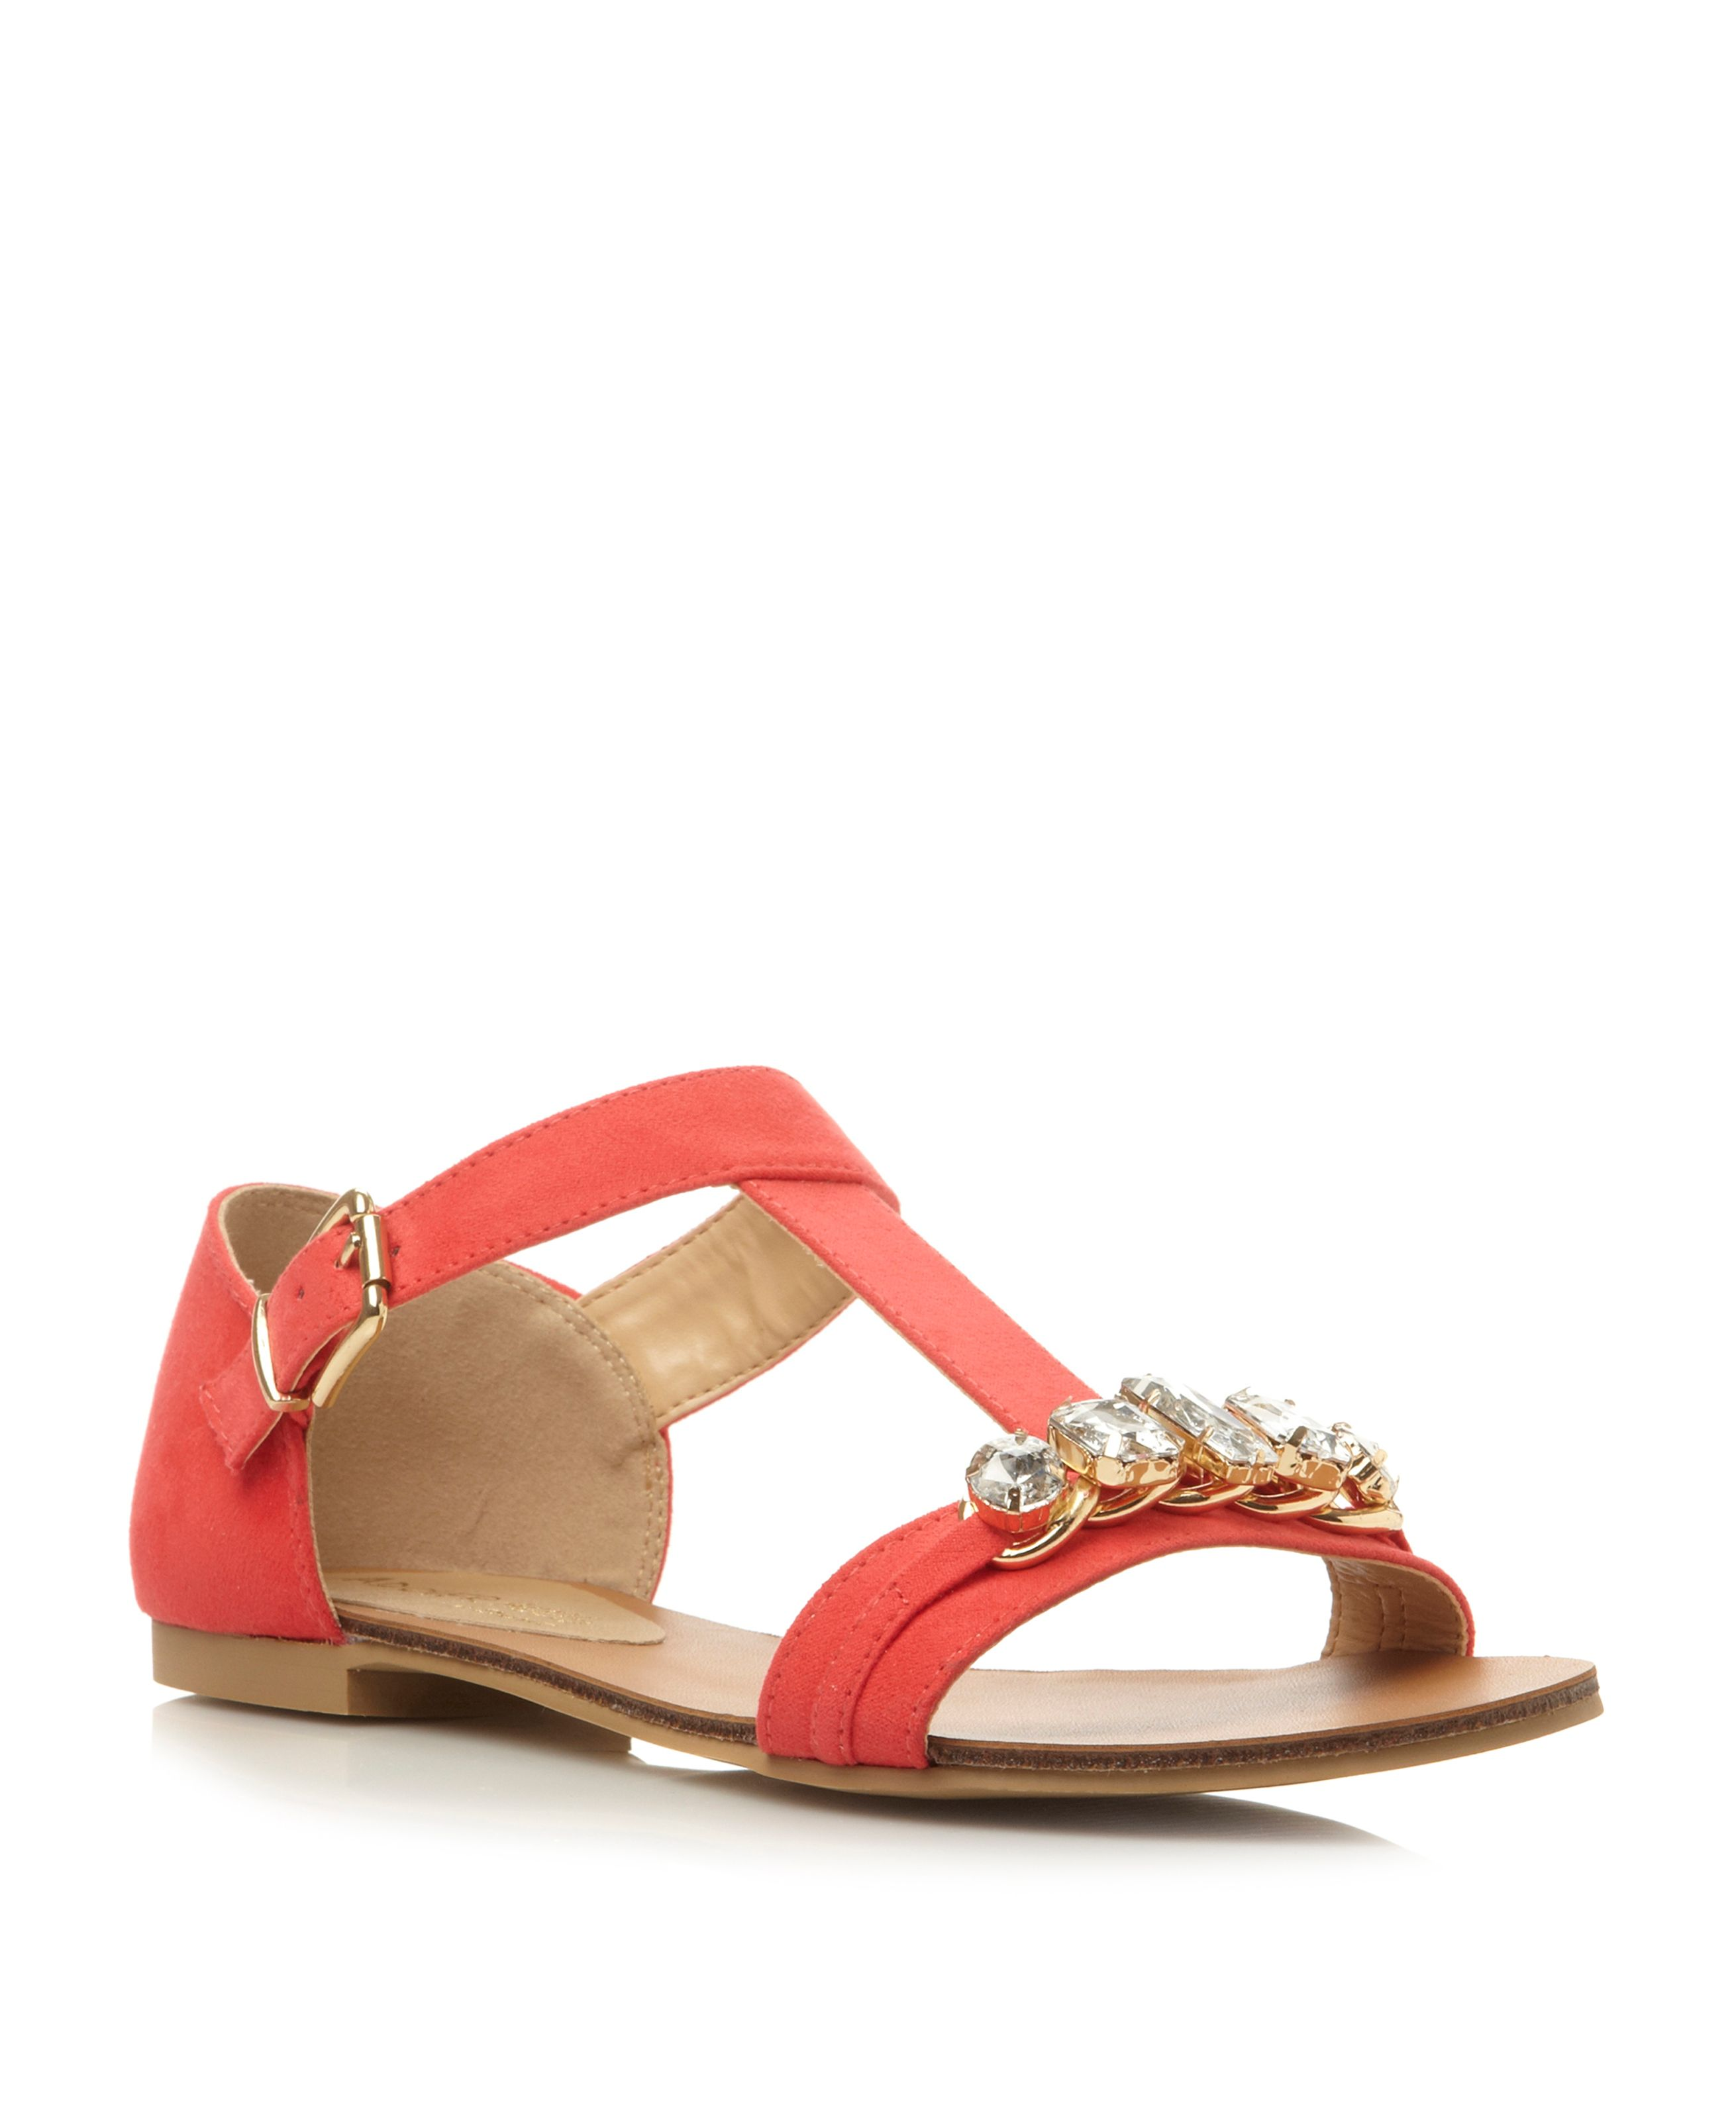 Bright jewelled h bar sandal